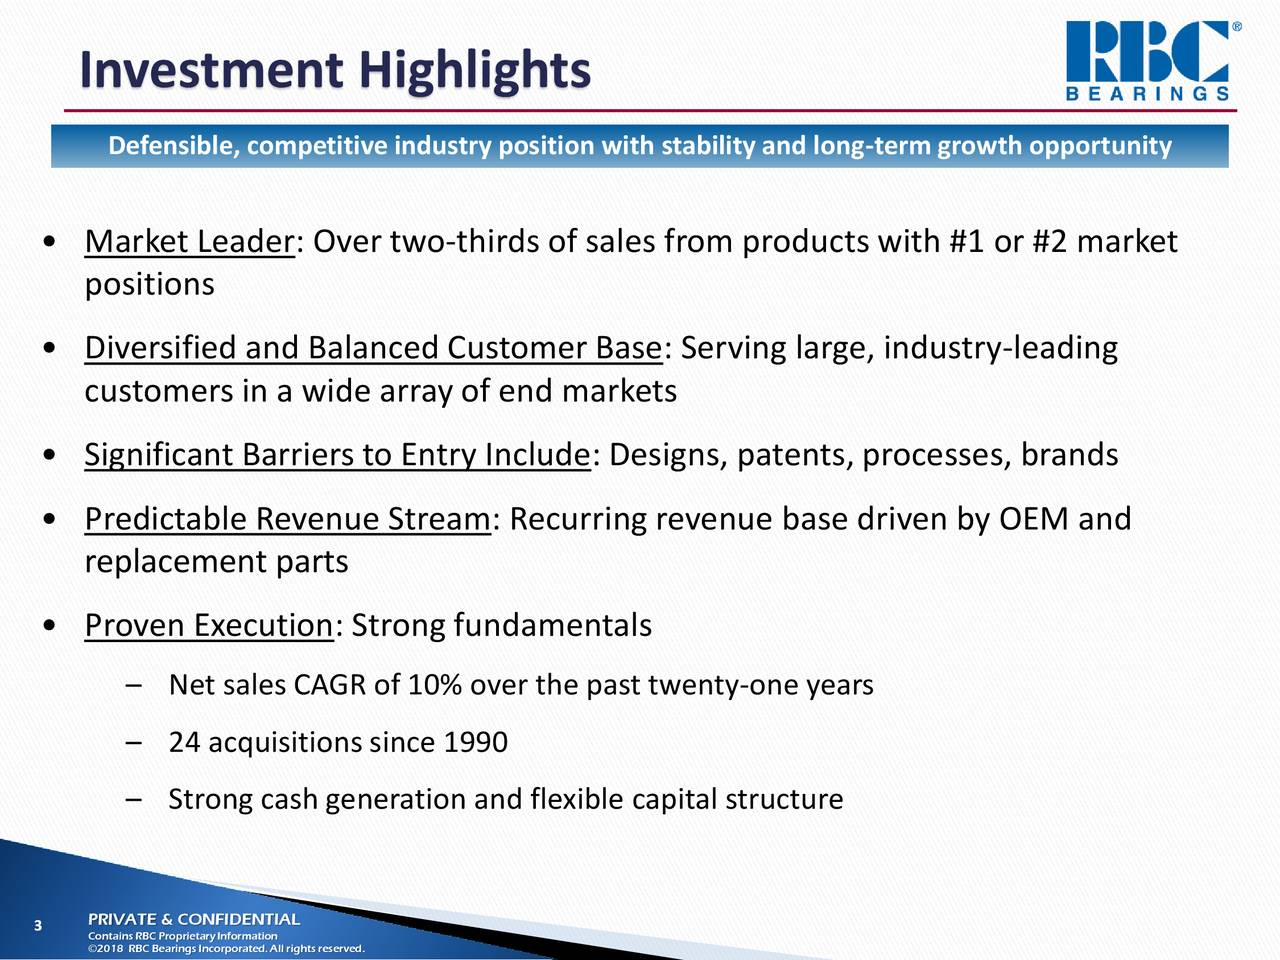 Defensible, competitive industry position with stability and long-term growth opportunity • Market Leader: Over two-thirds of sales from products with #1 or #2 market positions • Diversified and Balanced Customer Base: Serving large, industry-leading customers in a wide array of end markets • Significant Barriers to Entry Include: Designs, patents, processes, brands • Predictable Revenue Stream: Recurring revenue base driven by OEM and replacement parts • Proven Execution: Strong fundamentals – Net sales CAGR of 10% over the past twenty-one years – 24 acquisitions since 1990 – Strong cash generation and flexible capital structure 3 Contains RBC ProprietaryInformation